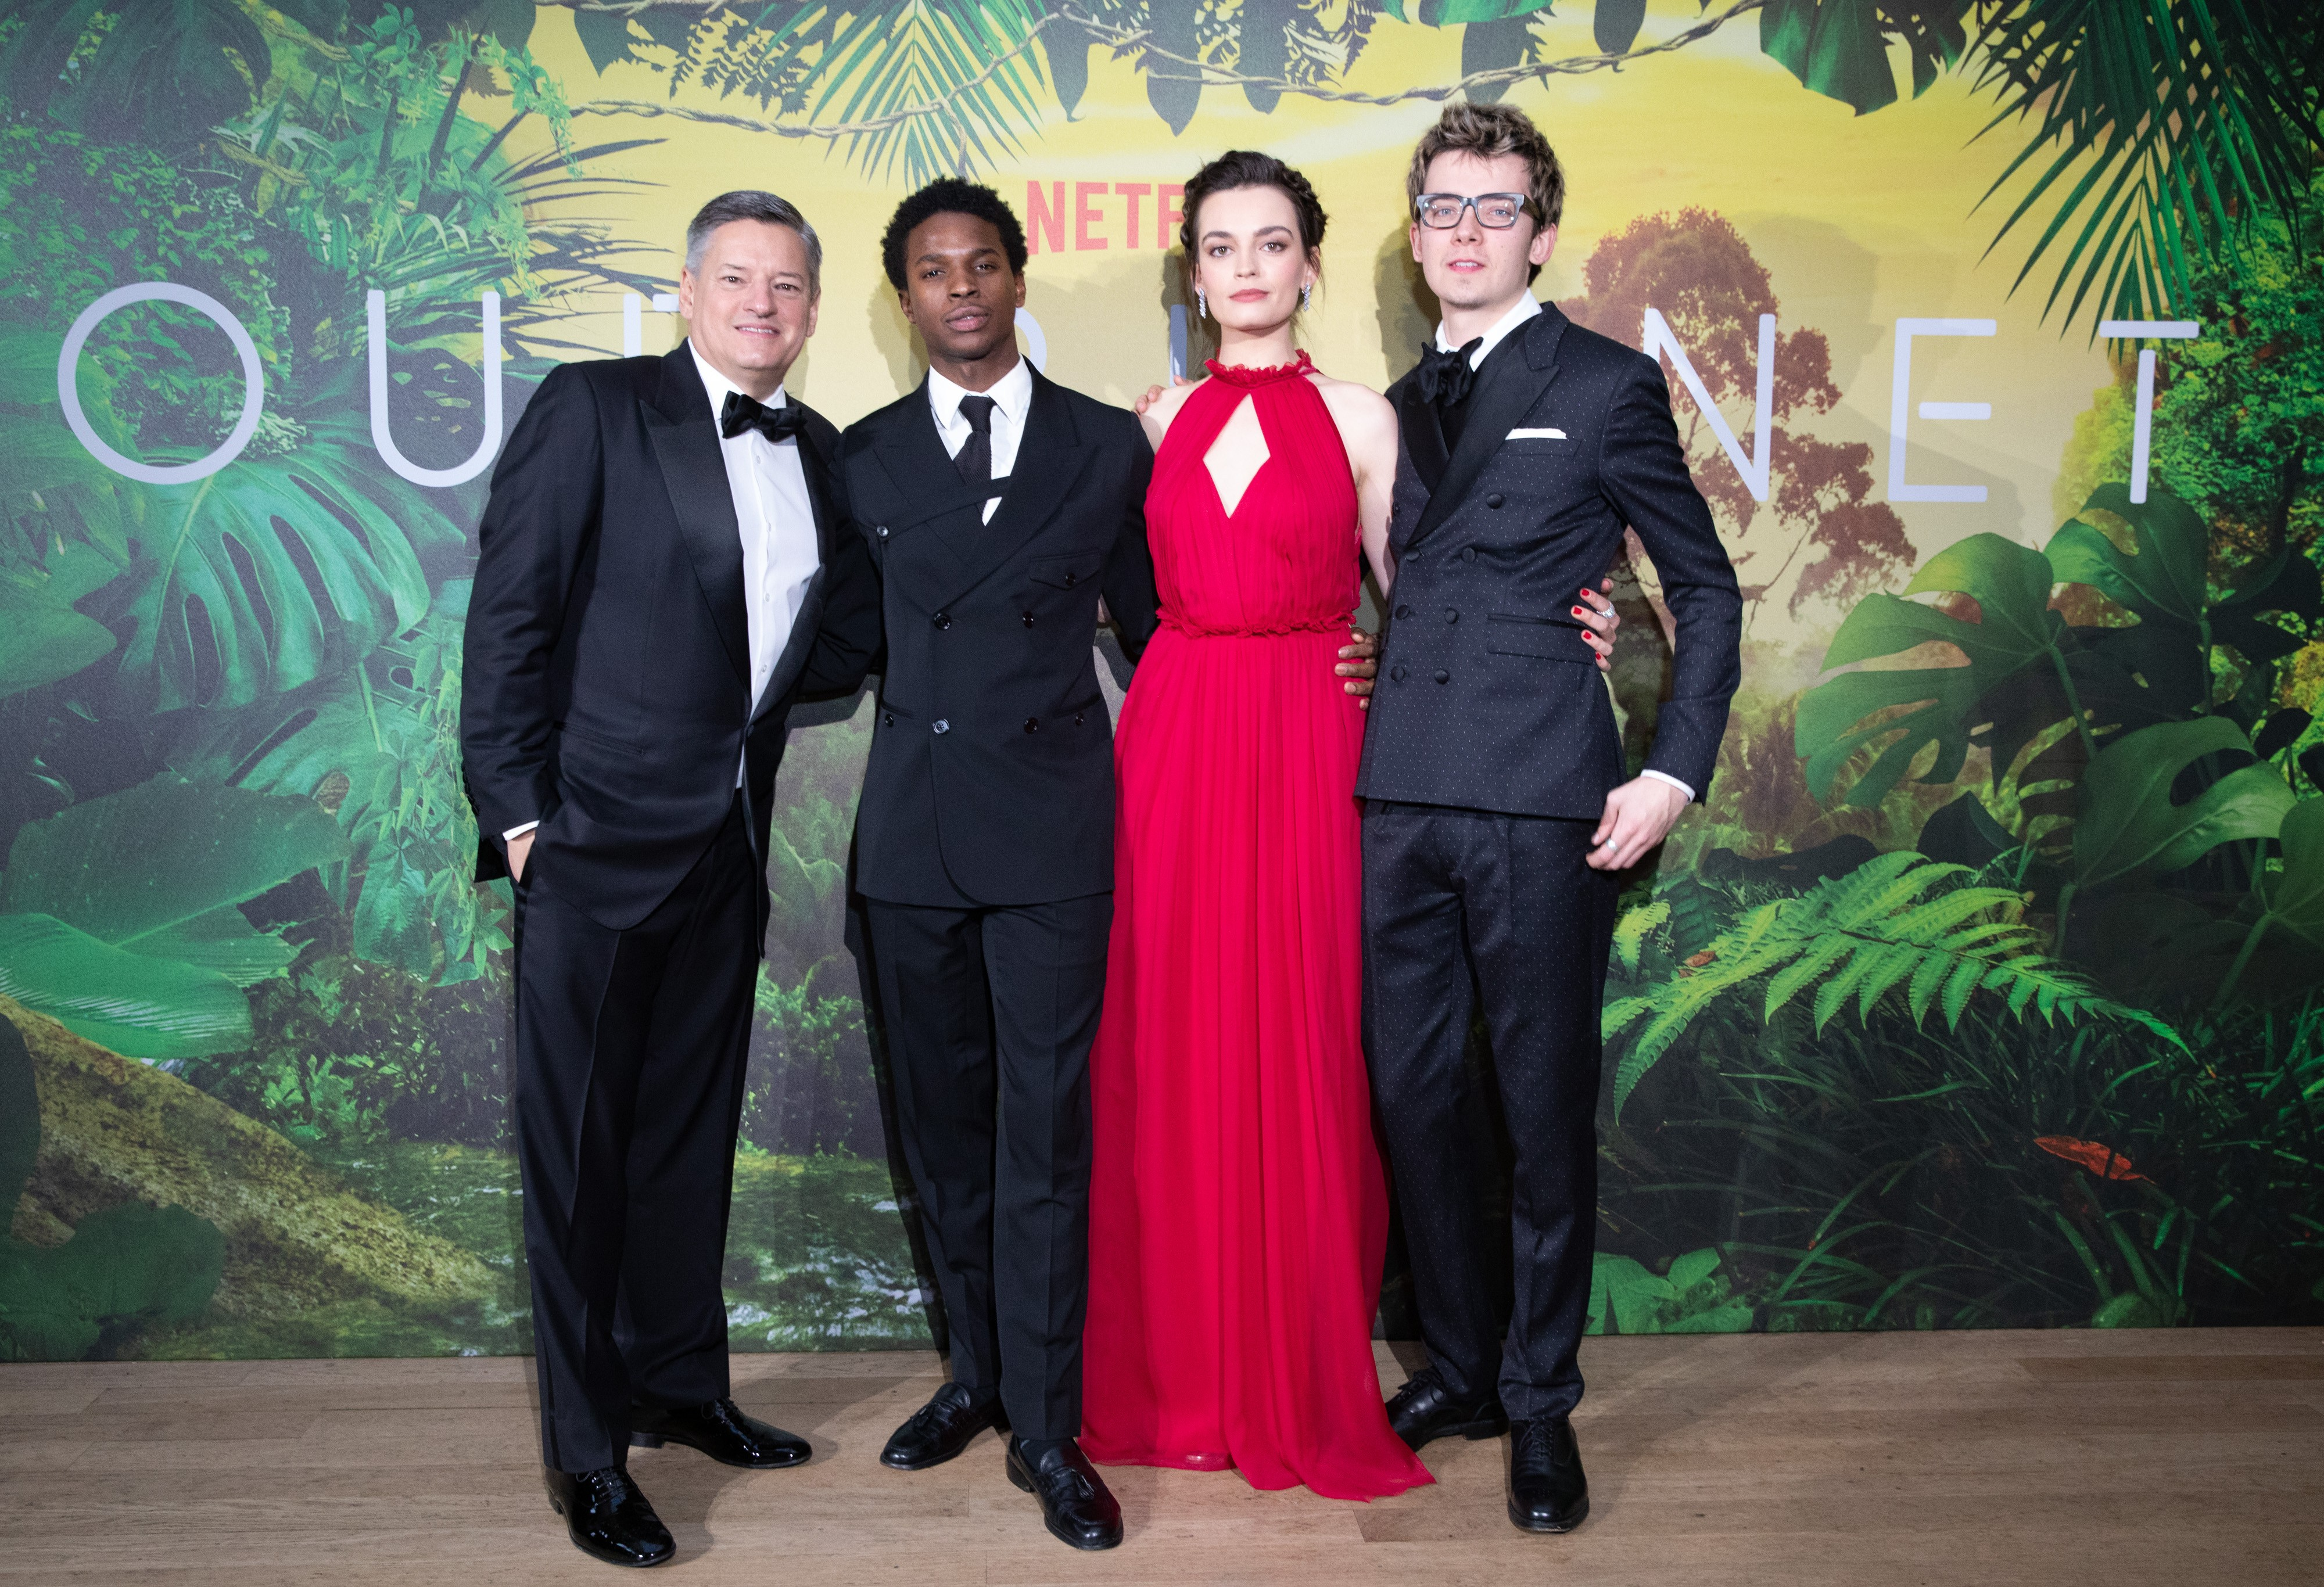 Netflix's Our Planet Royal World Premiere, London, April 2019. (L-R) Ted Sarandos, Kedar Williams-Stirling, Emma Mackey and Asa Butterfield